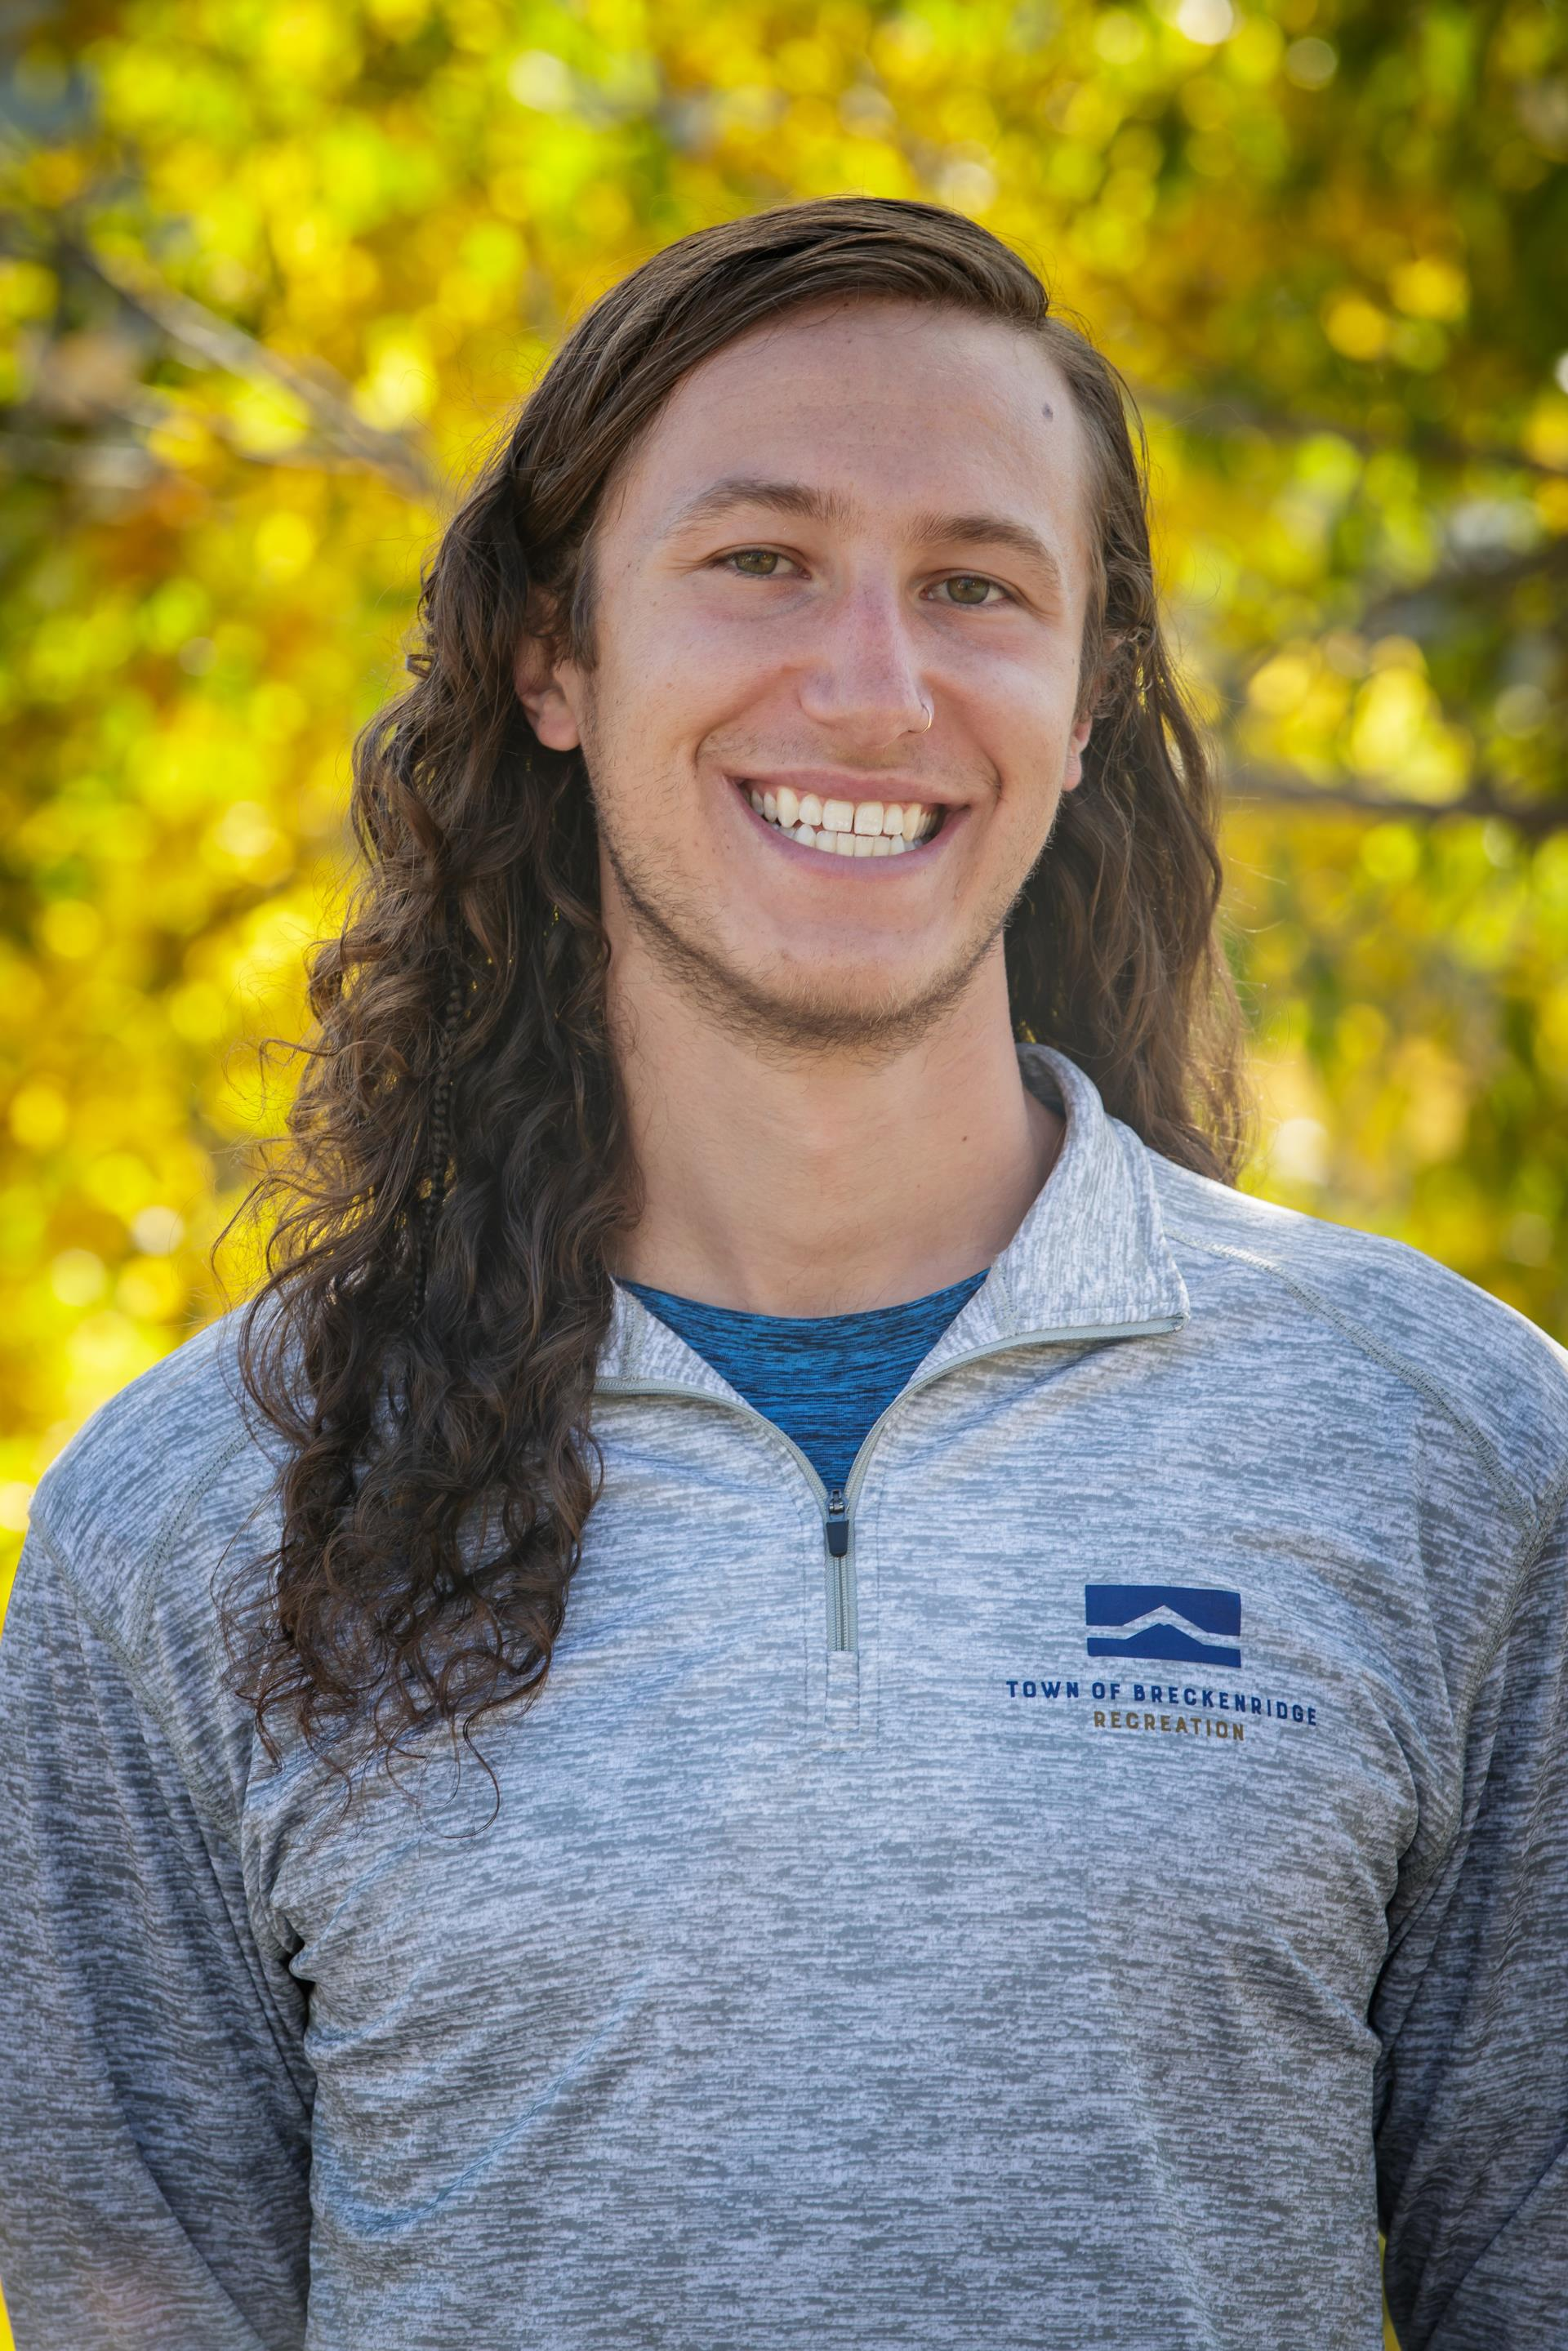 Head shot of Blake Veath Breckenridge personal trainer in blue staff shirt